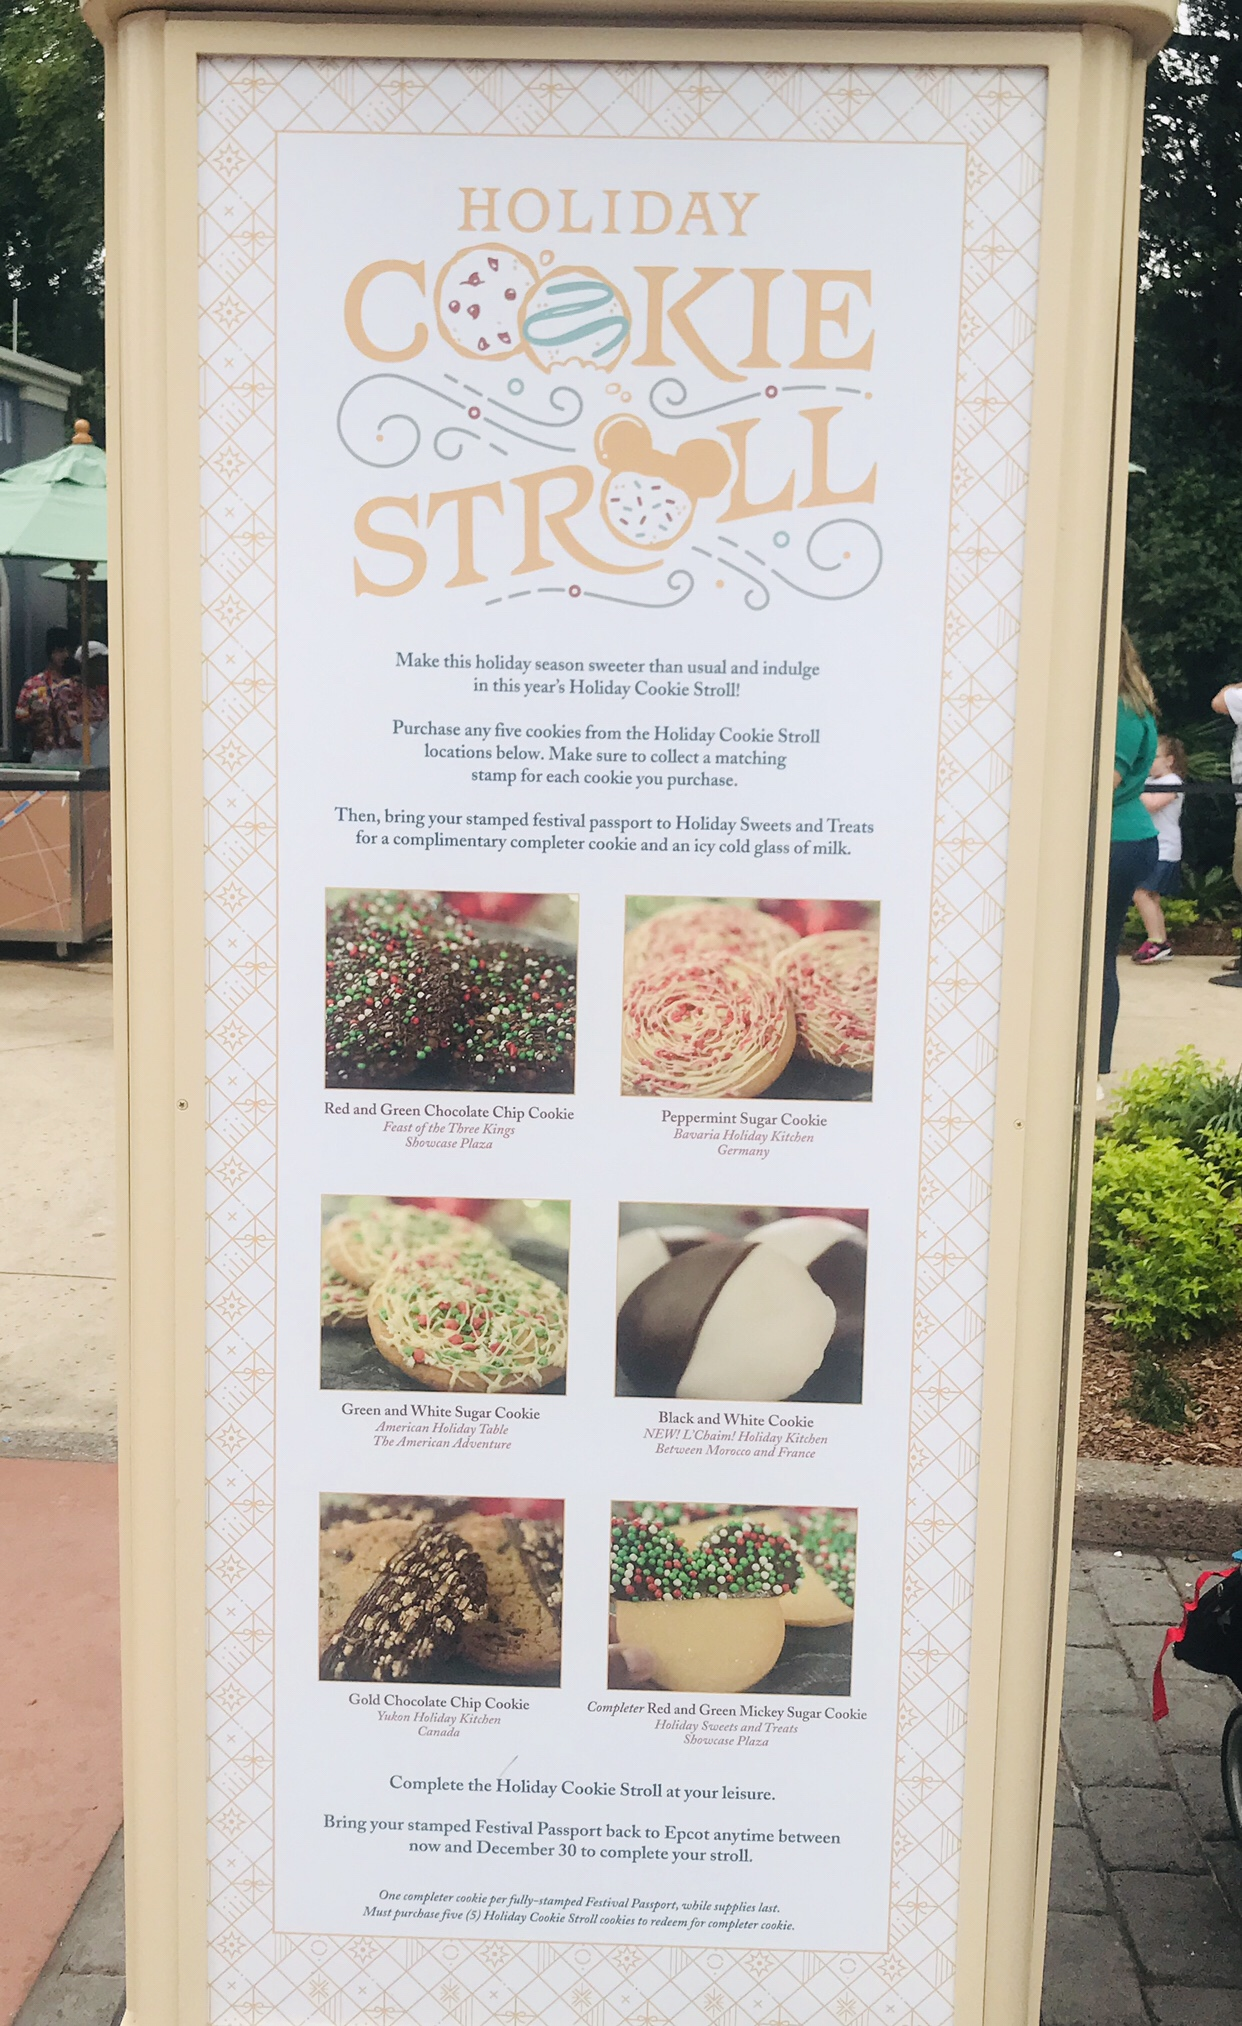 New Holiday Cookie Stroll at Epcot Festival of the Holidays